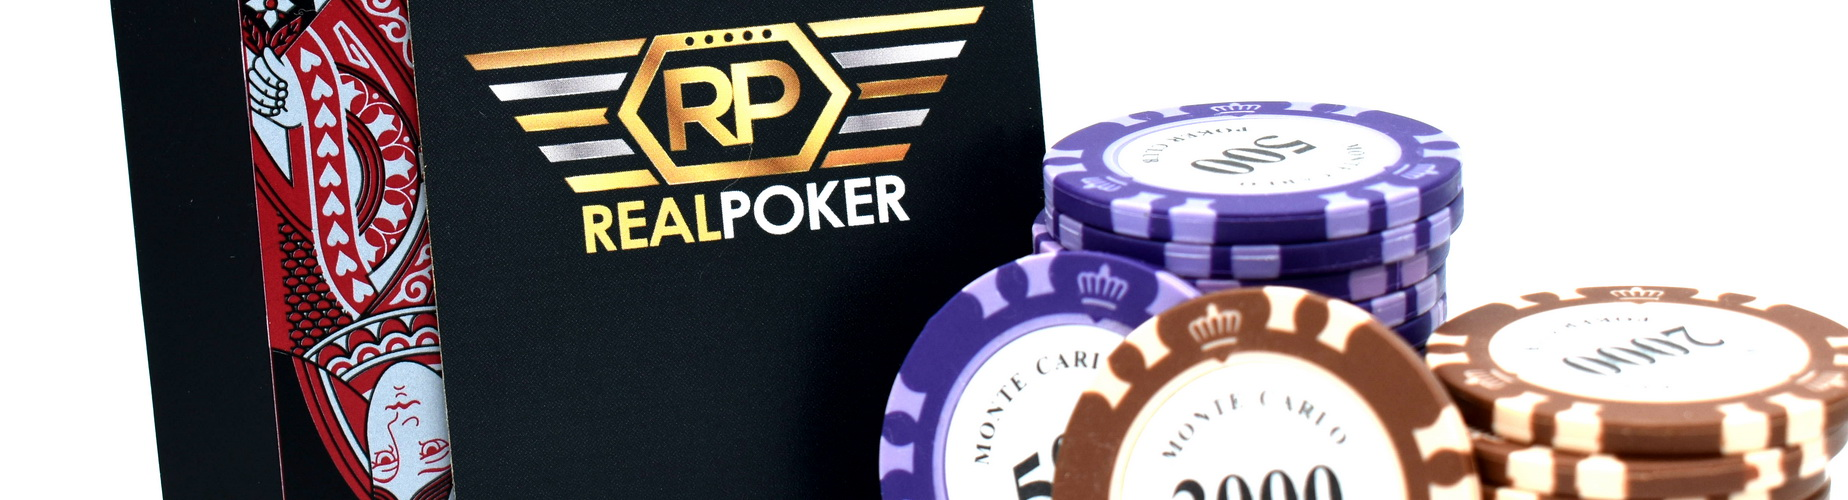 Bitcoin poker hints and tip